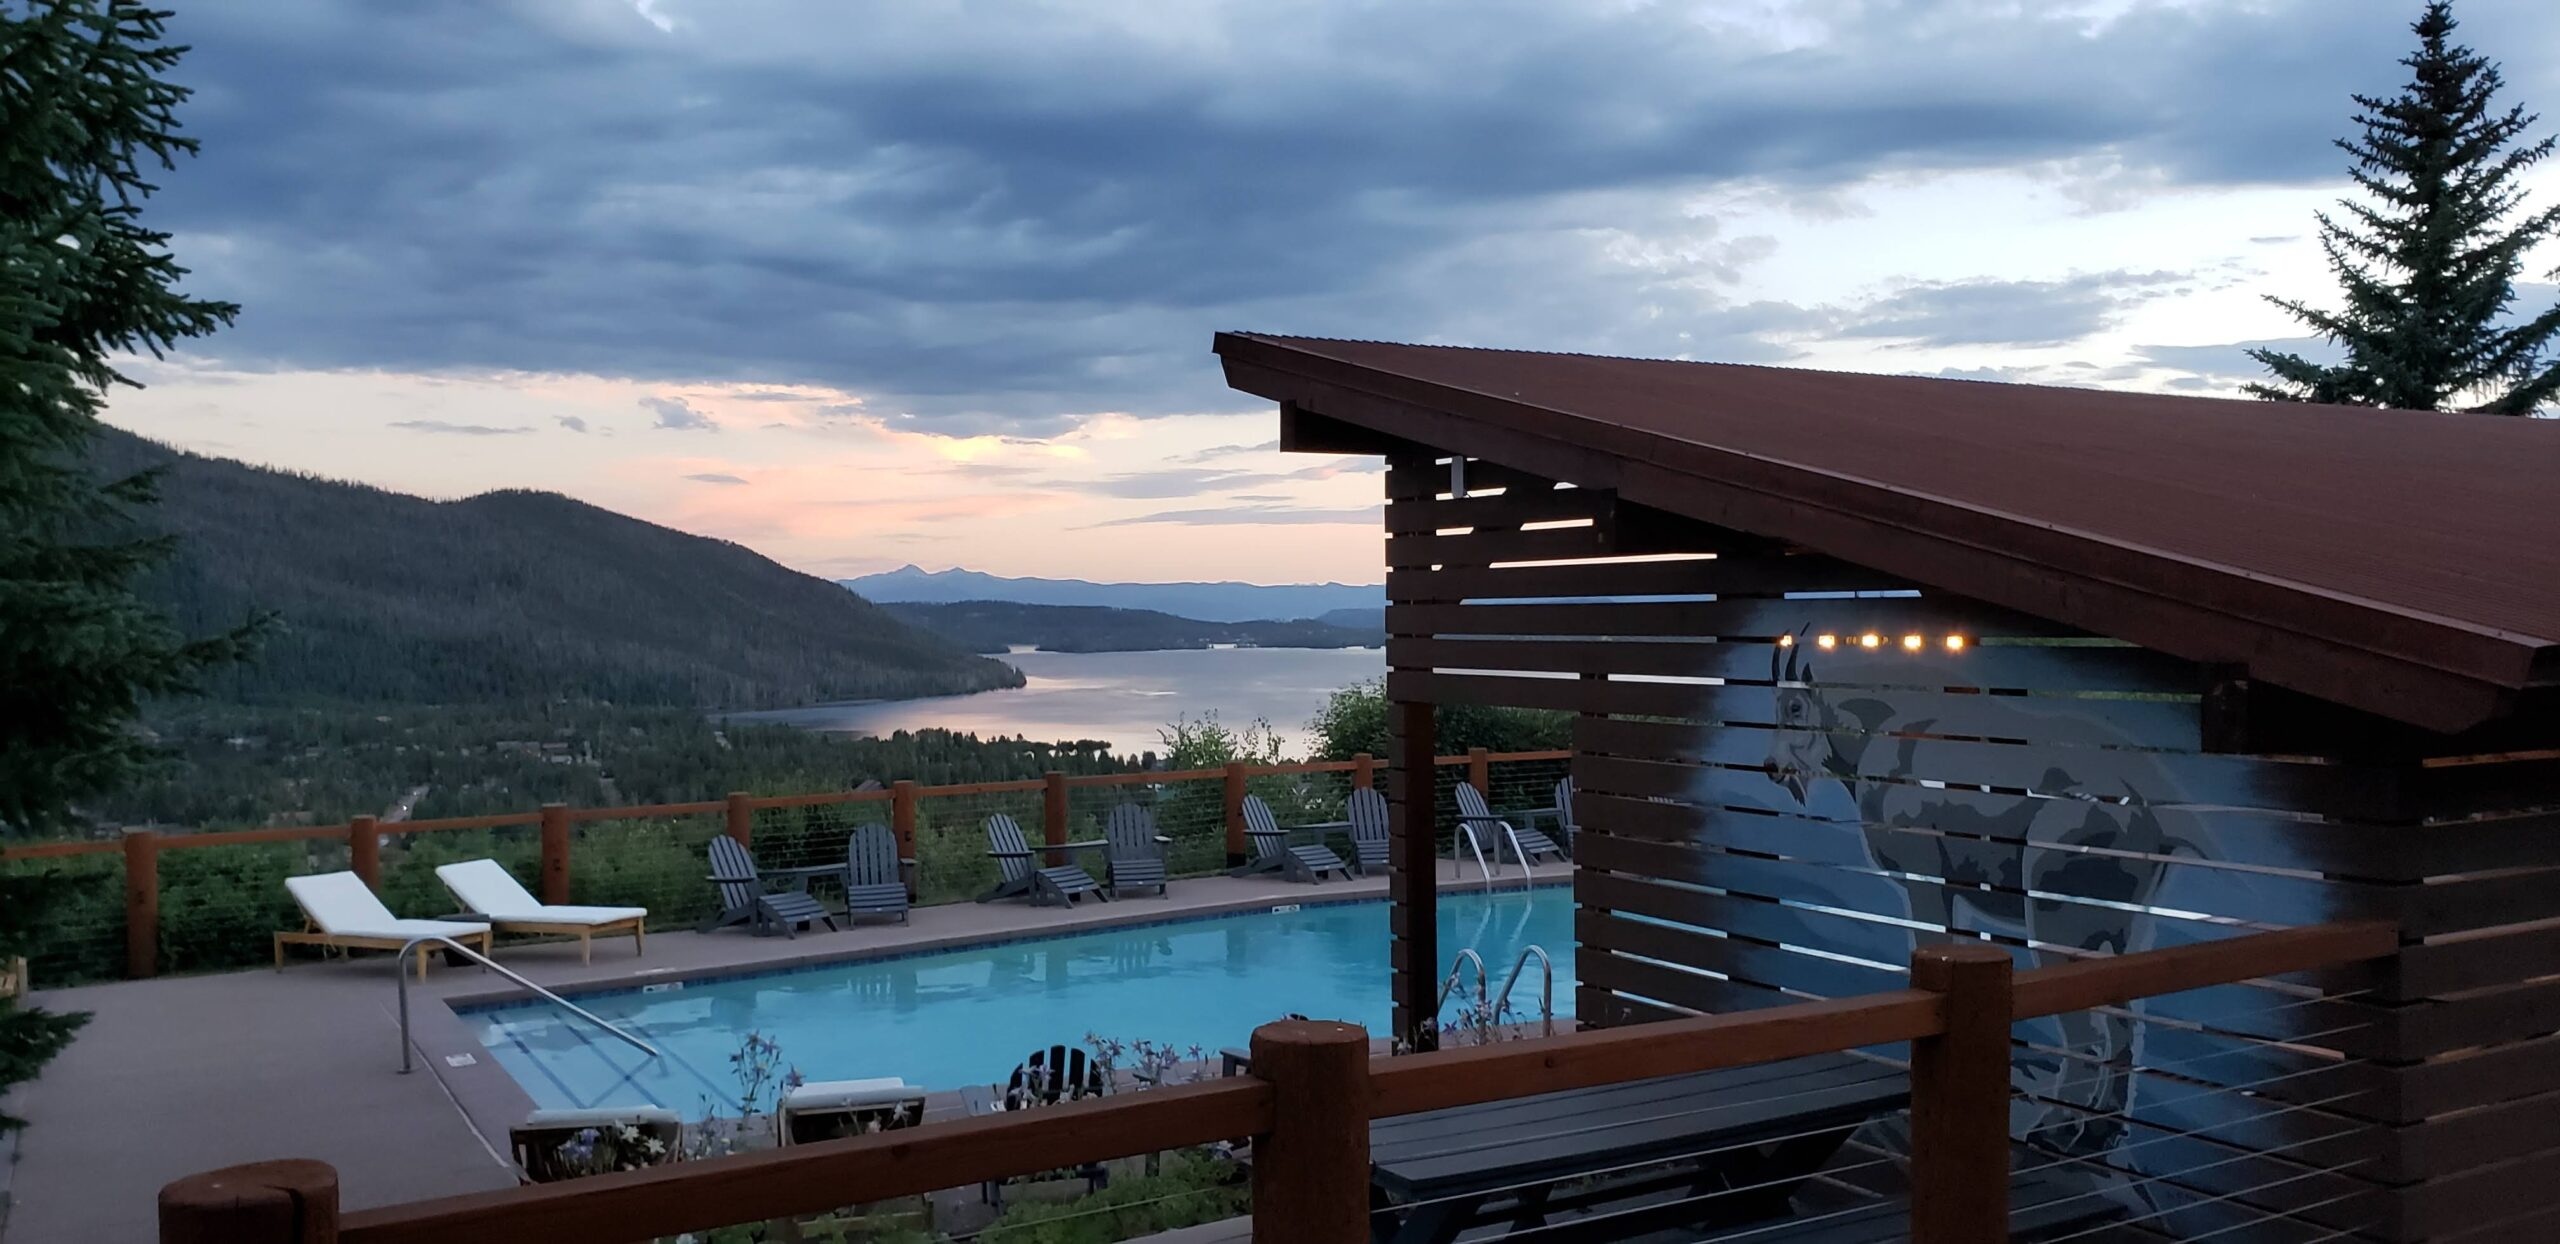 The best view of Grand Lake is from the Grand Lake Lodge. Photo: Diana Rowe